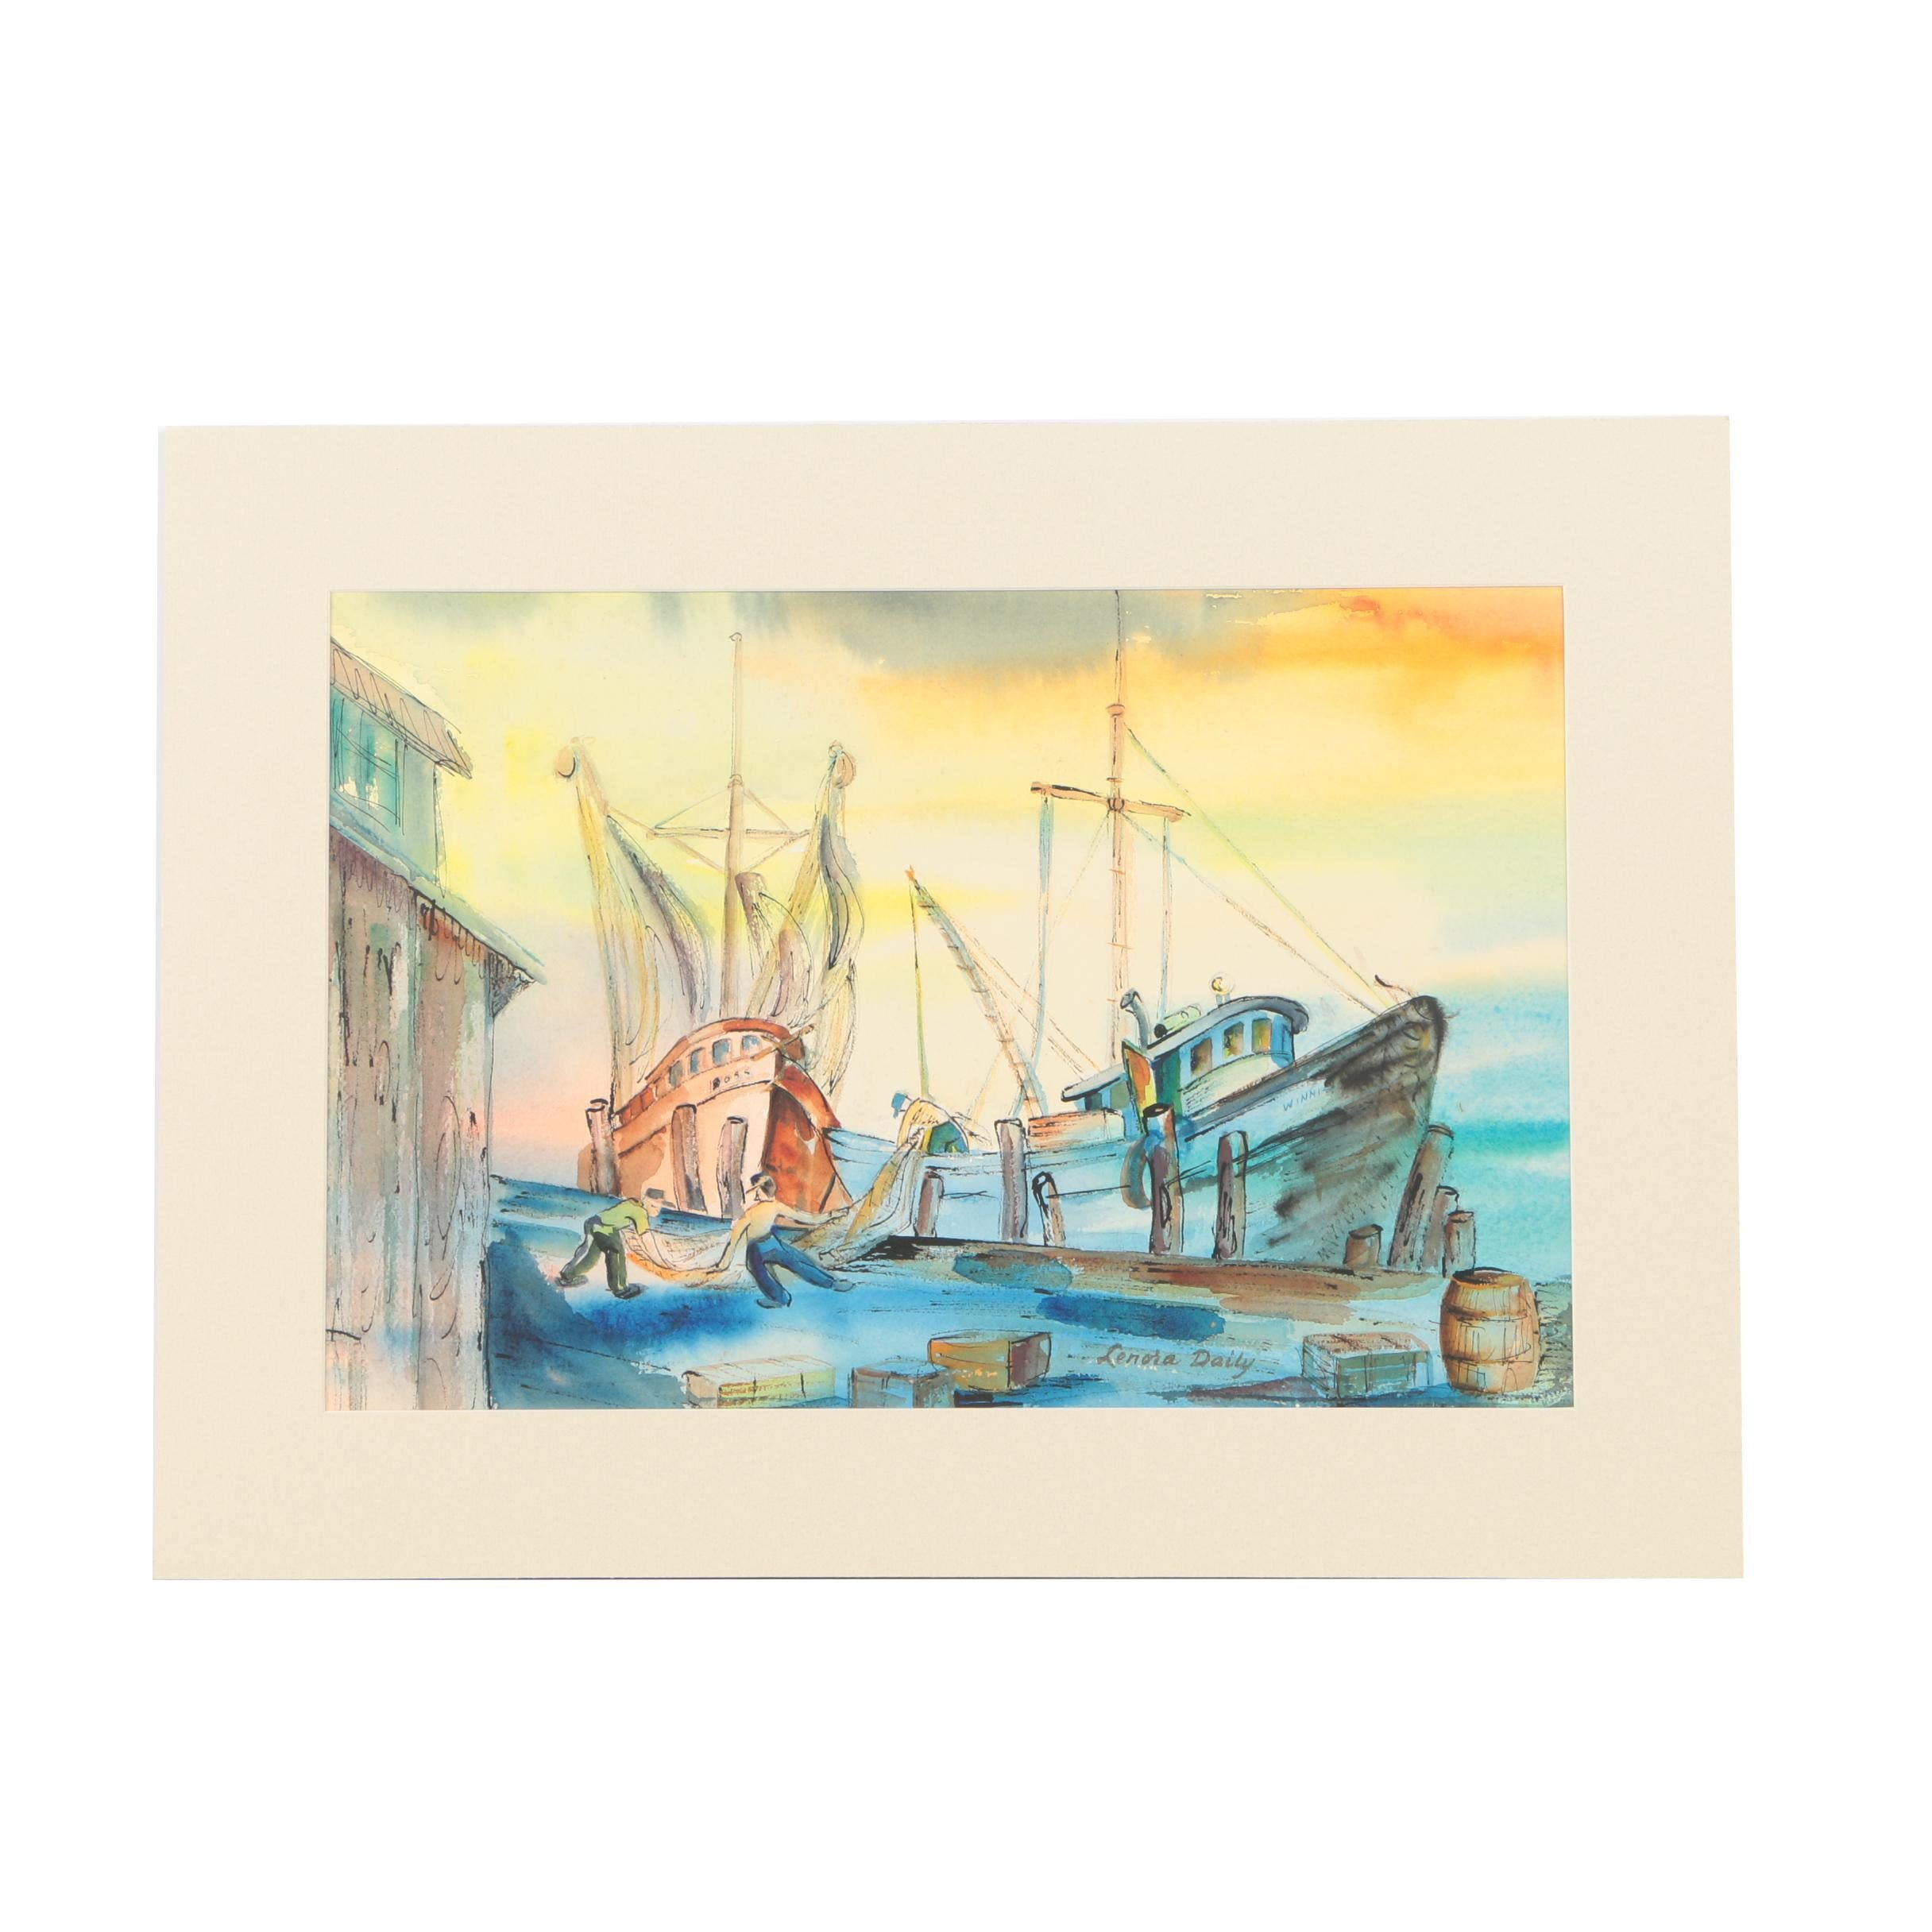 Lenora Daily Ink and Watercolor of Dock Workers and a Ship